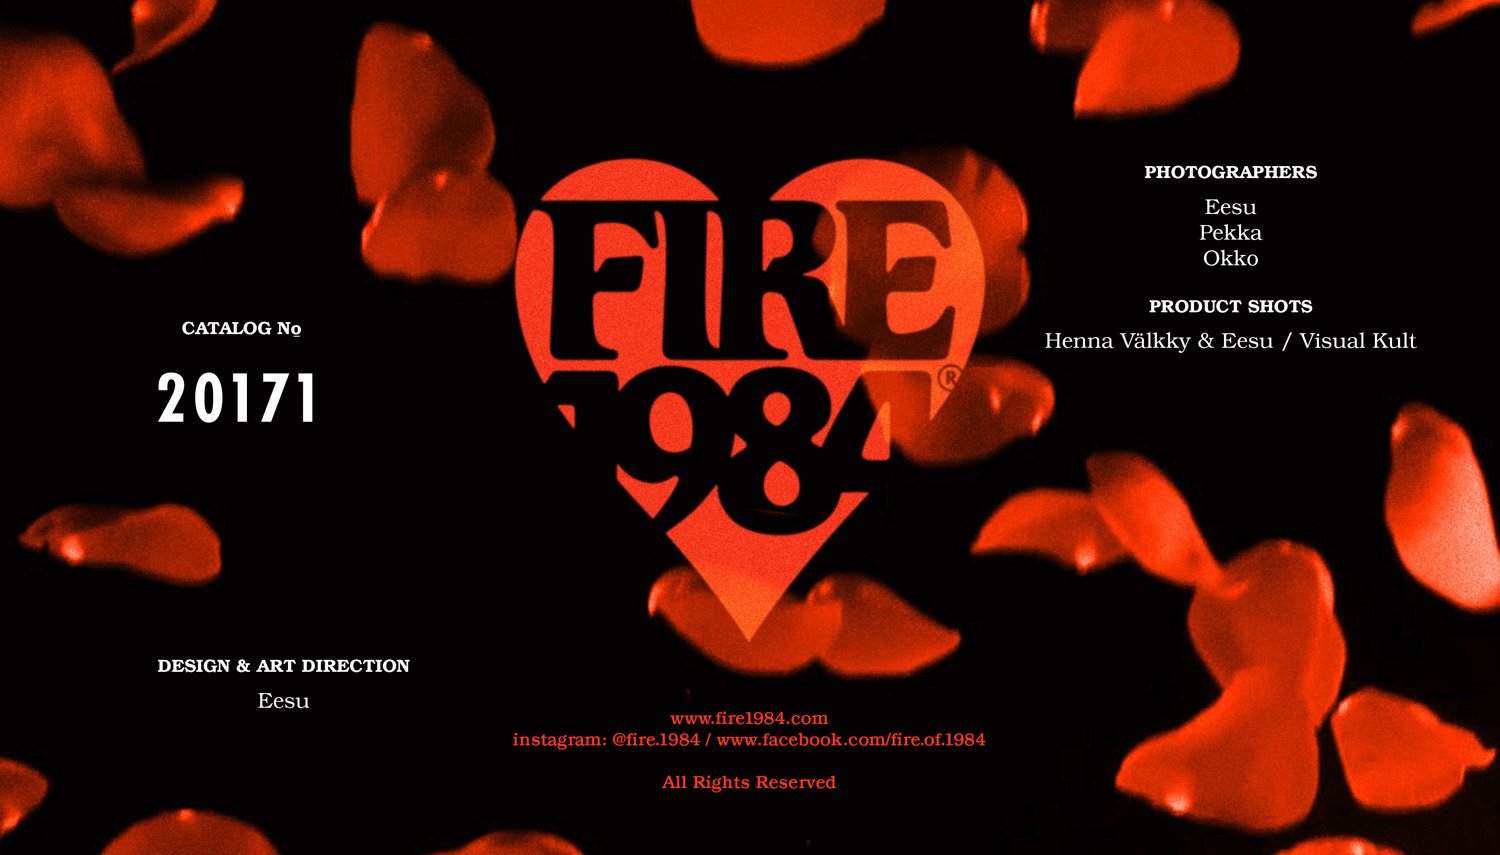 FIRE1984 catalog 20171 credits